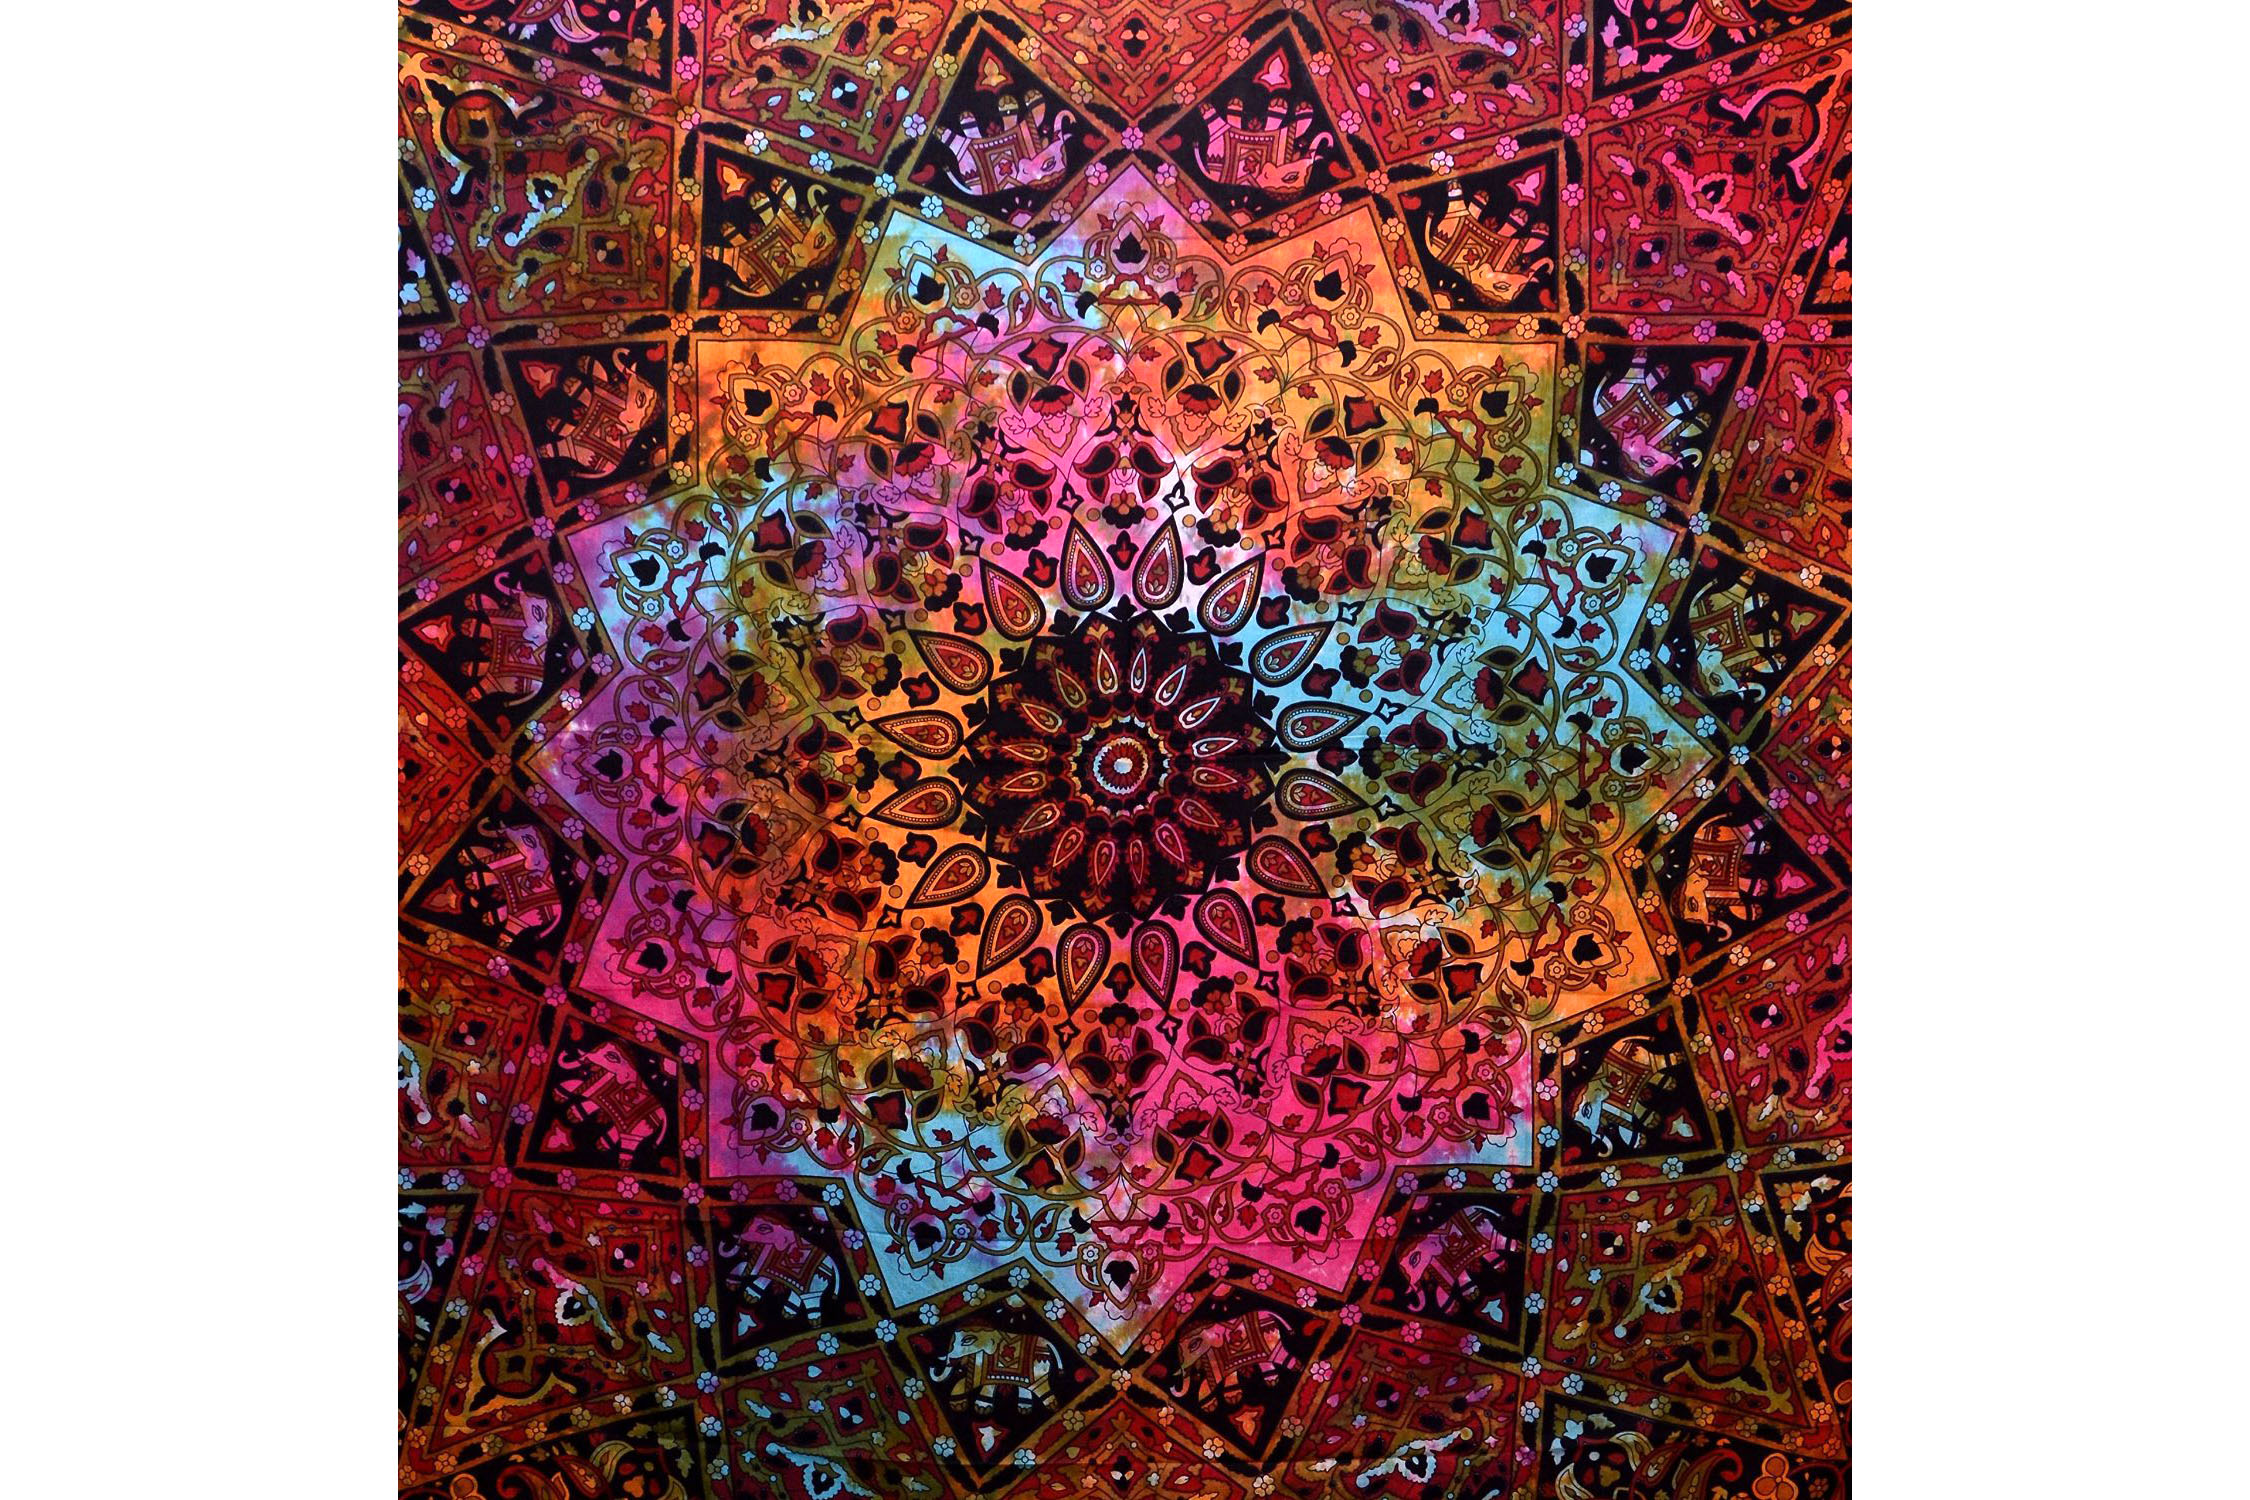 Kaleidoscopic Star Tapestry - Multiple Colorways 4.5 stars - $1-$30 (Prime)